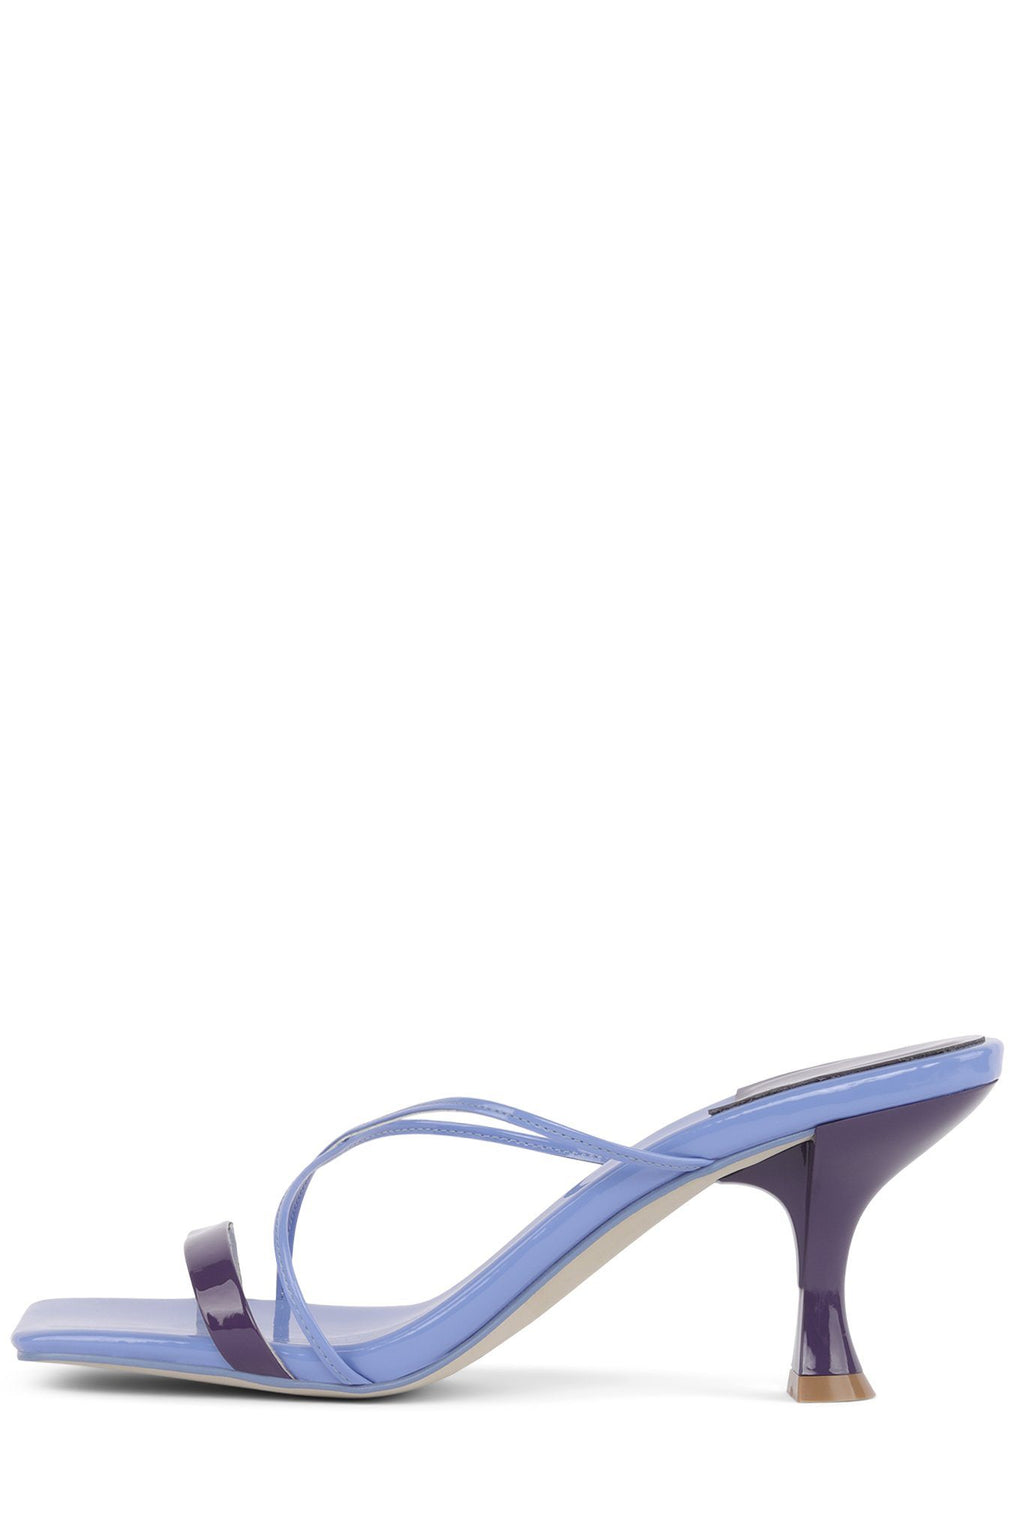 MURAL-2 Heeled Sandal YYH Blue Patent Multi 6